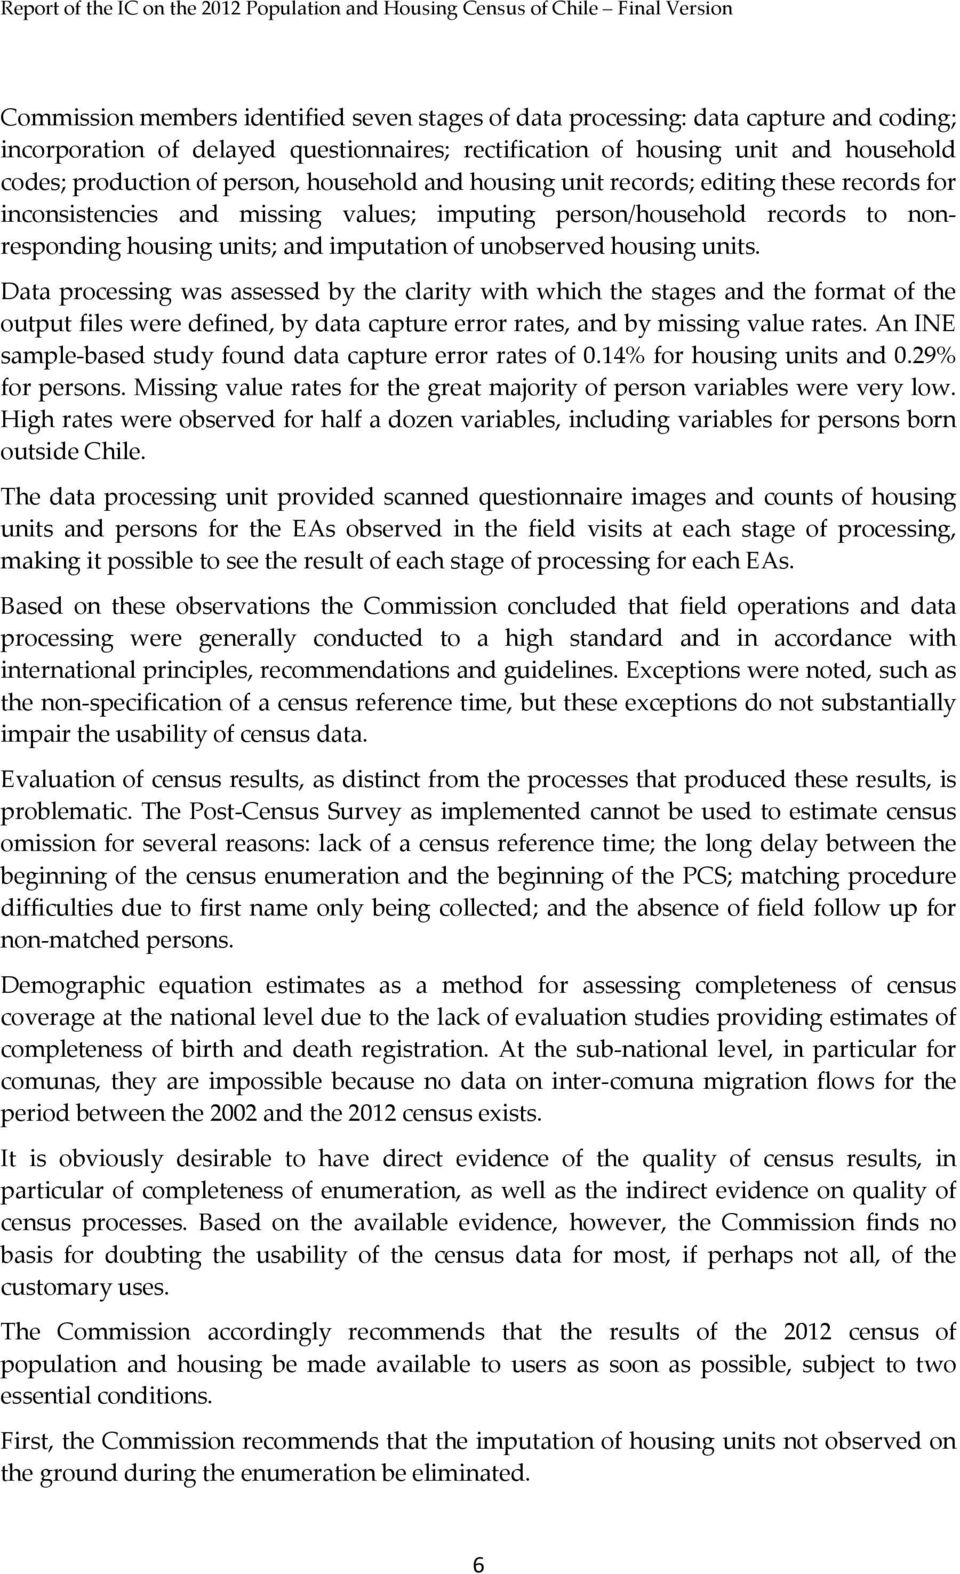 unobserved housing units. Data processing was assessed by the clarity with which the stages and the format of the output files were defined, by data capture error rates, and by missing value rates.